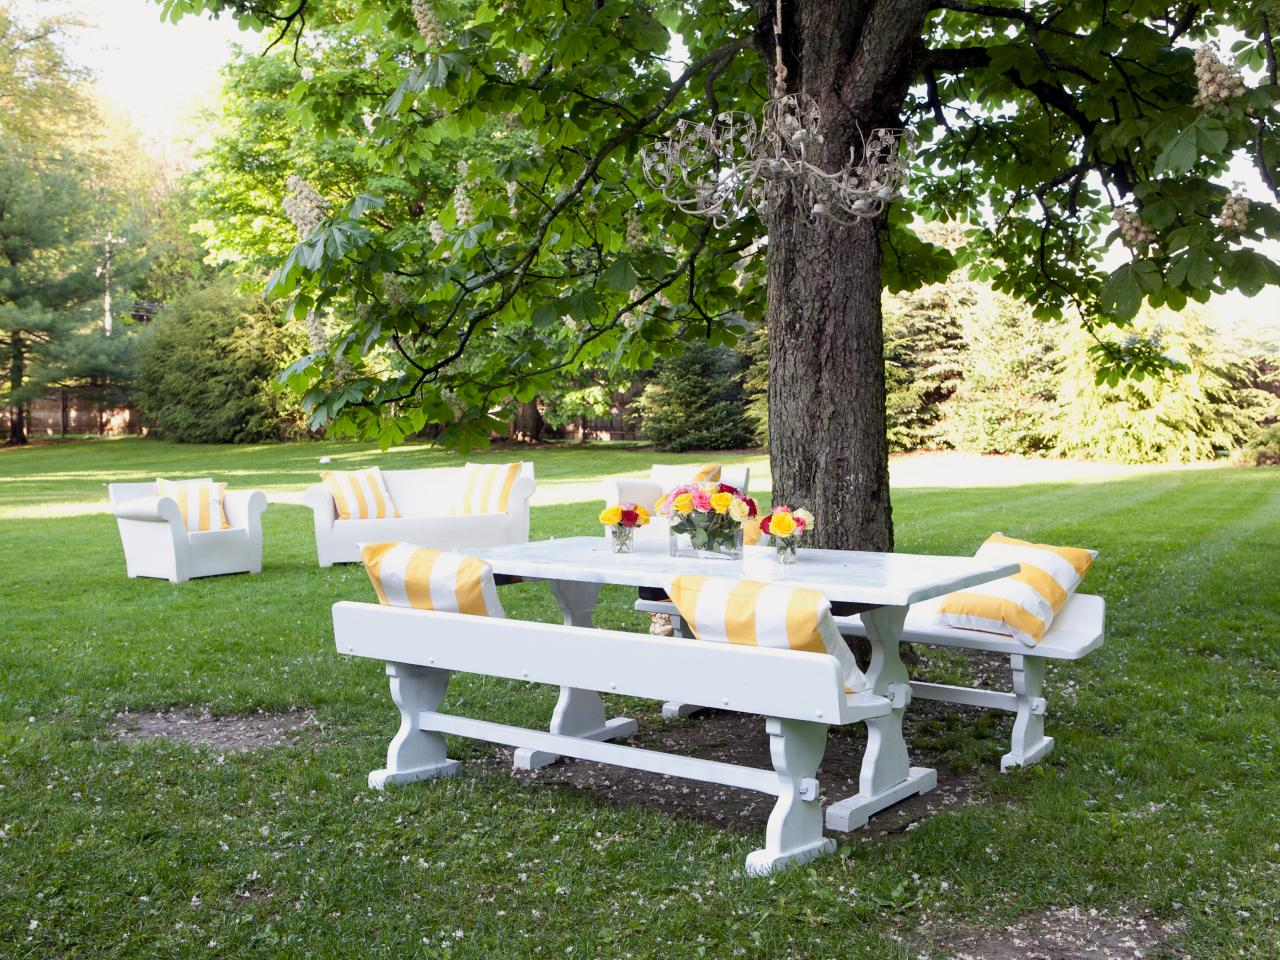 White Picnic Table With Yellow Striped Pillows